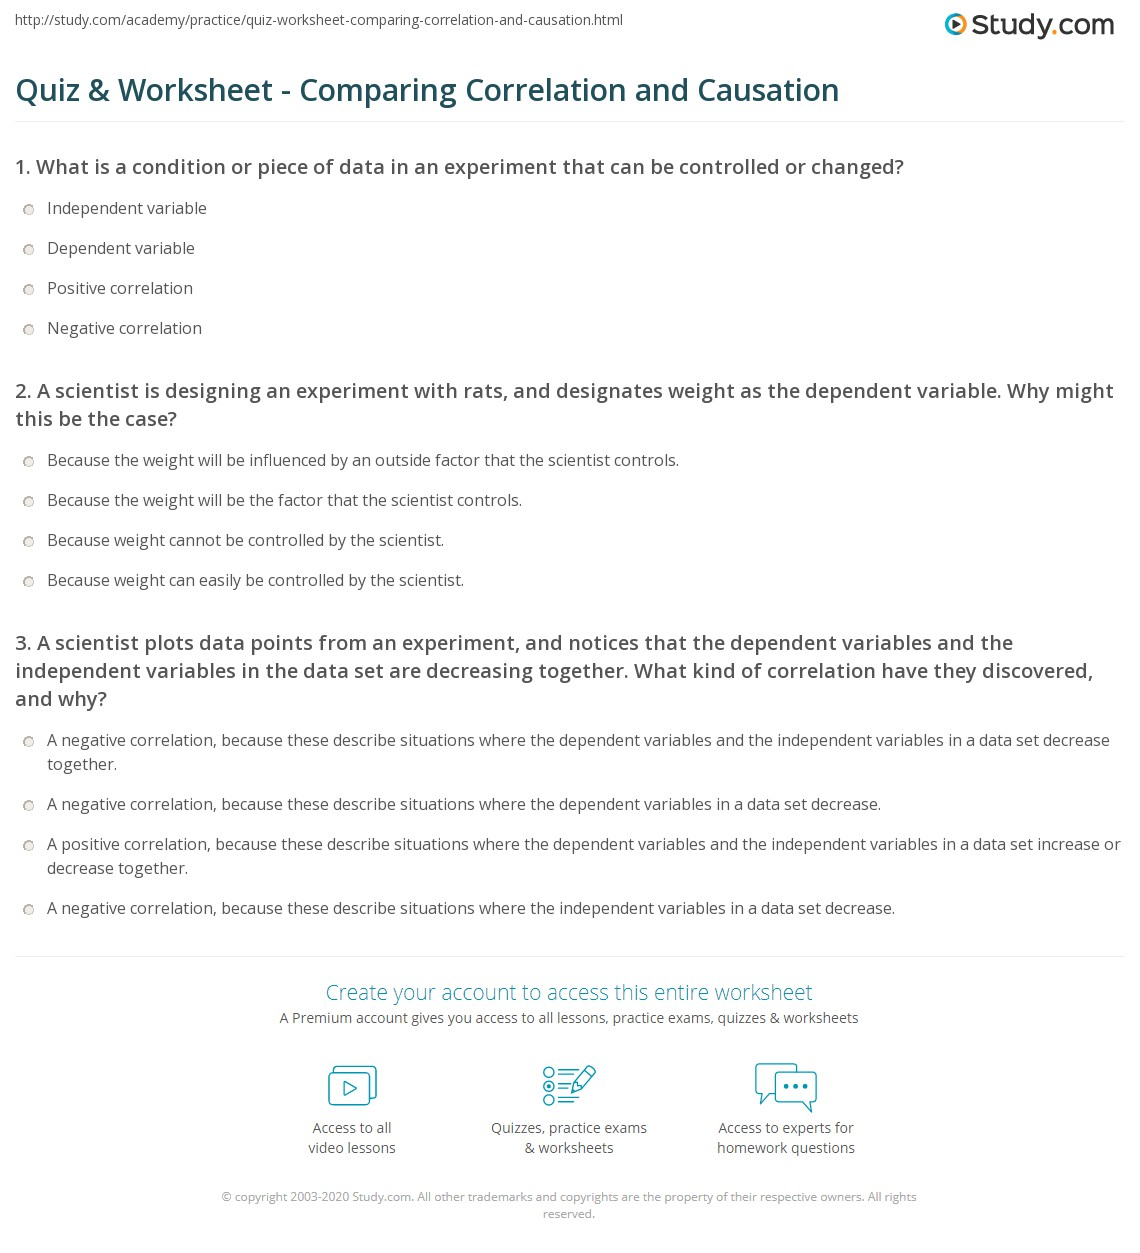 Aldiablosus  Pleasing Quiz Amp Worksheet  Comparing Correlation And Causation  Studycom With Magnificent Print Correlation Vs Causation Differences Amp Definition Worksheet With Cute Reading Scales Ks Worksheet Also Pronoun Worksheets For St Grade In Addition Number Spelling Worksheets And Px Pap Lower Worksheet As Well As Reading Comprehension For Beginners Free Worksheets Additionally Esl Seasons Worksheets From Studycom With Aldiablosus  Magnificent Quiz Amp Worksheet  Comparing Correlation And Causation  Studycom With Cute Print Correlation Vs Causation Differences Amp Definition Worksheet And Pleasing Reading Scales Ks Worksheet Also Pronoun Worksheets For St Grade In Addition Number Spelling Worksheets From Studycom